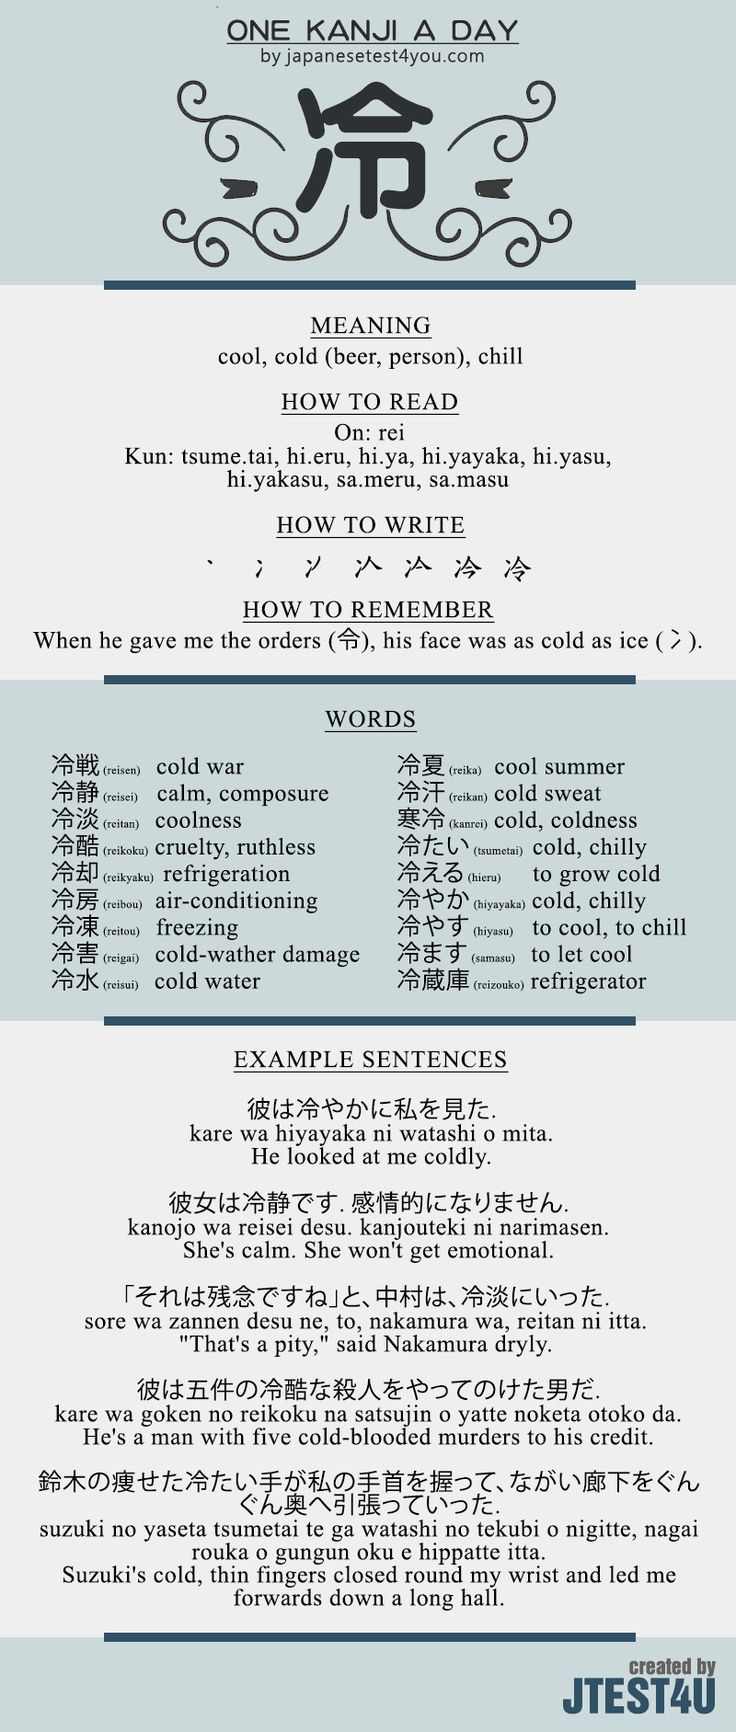 Learn one Kanji a day with infographic - 冷 (rei): http://japanesetest4you.com/learn-one-kanji-a-day-with-infographic-%e5%86%b7-rei/